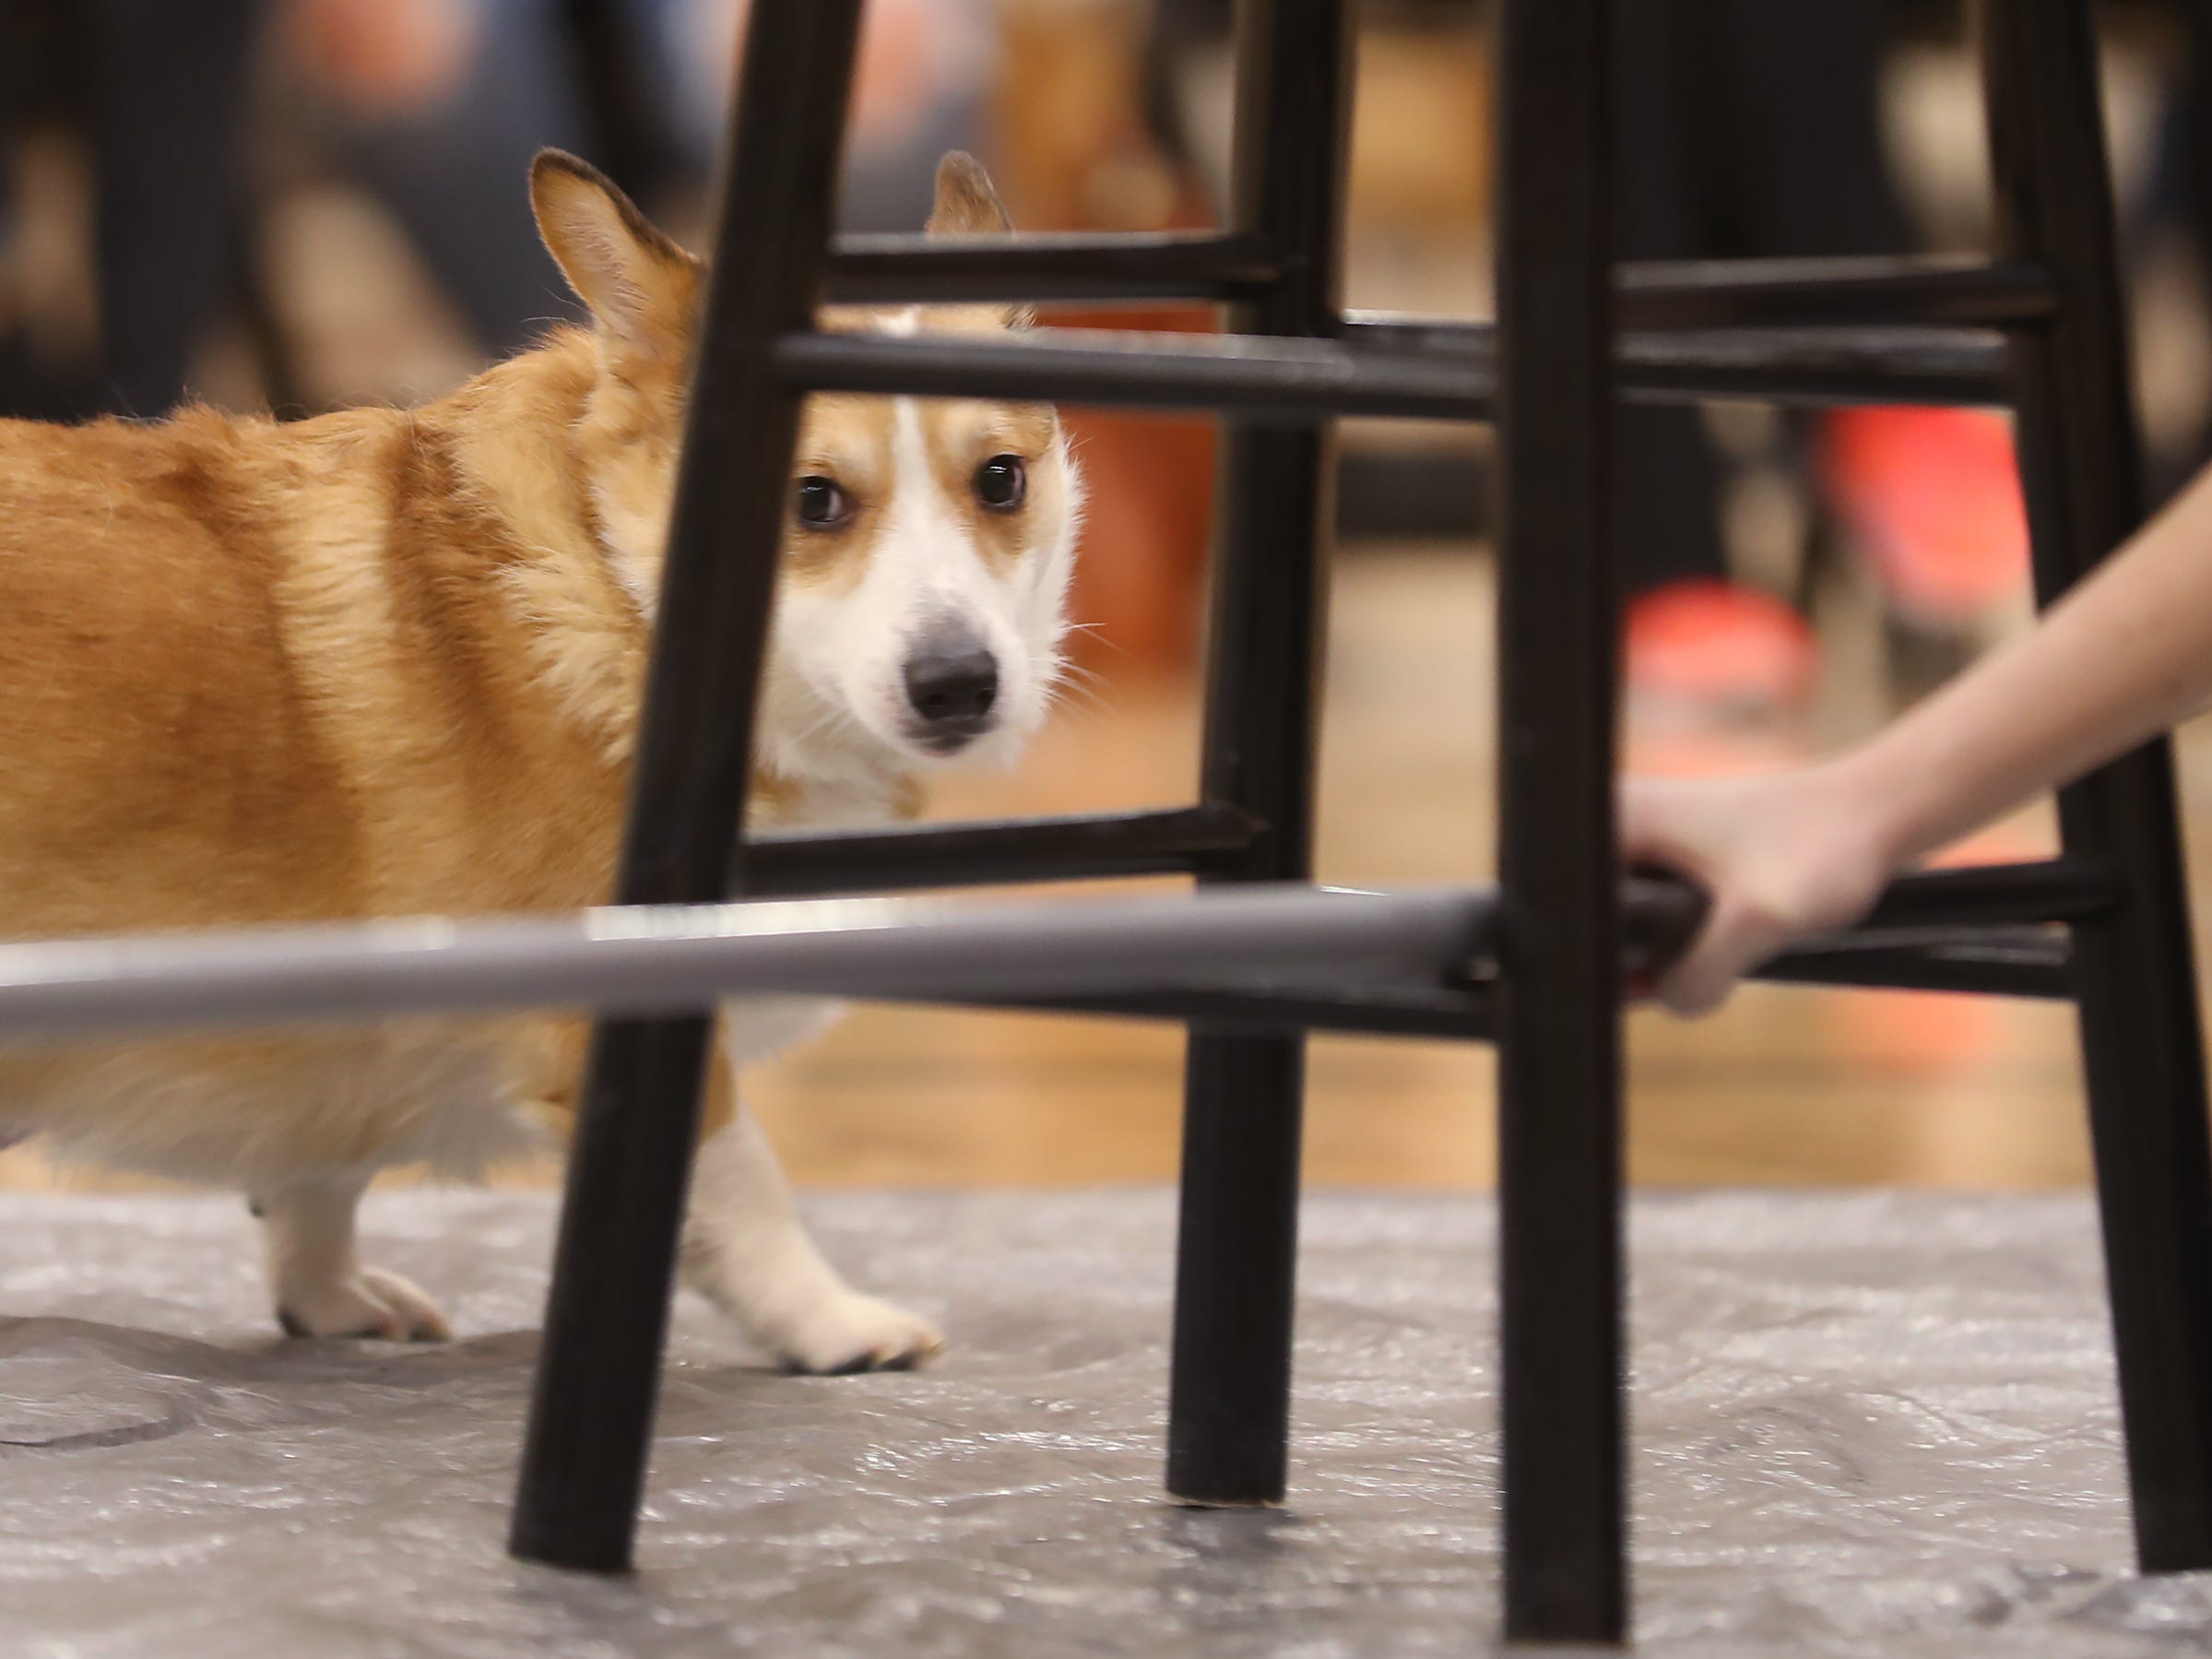 This Corgi is not sure the limbo bar in passable, at the Indianapolis Corgi Limbo & Costume Contest at IUPUI, Sunday, April 14, 2019.  The event benefits children orphaned by HIV/AIDS in eSwatini, Africa.  It is presented by the Give Hope, Fight Poverty IUPUI chapter.